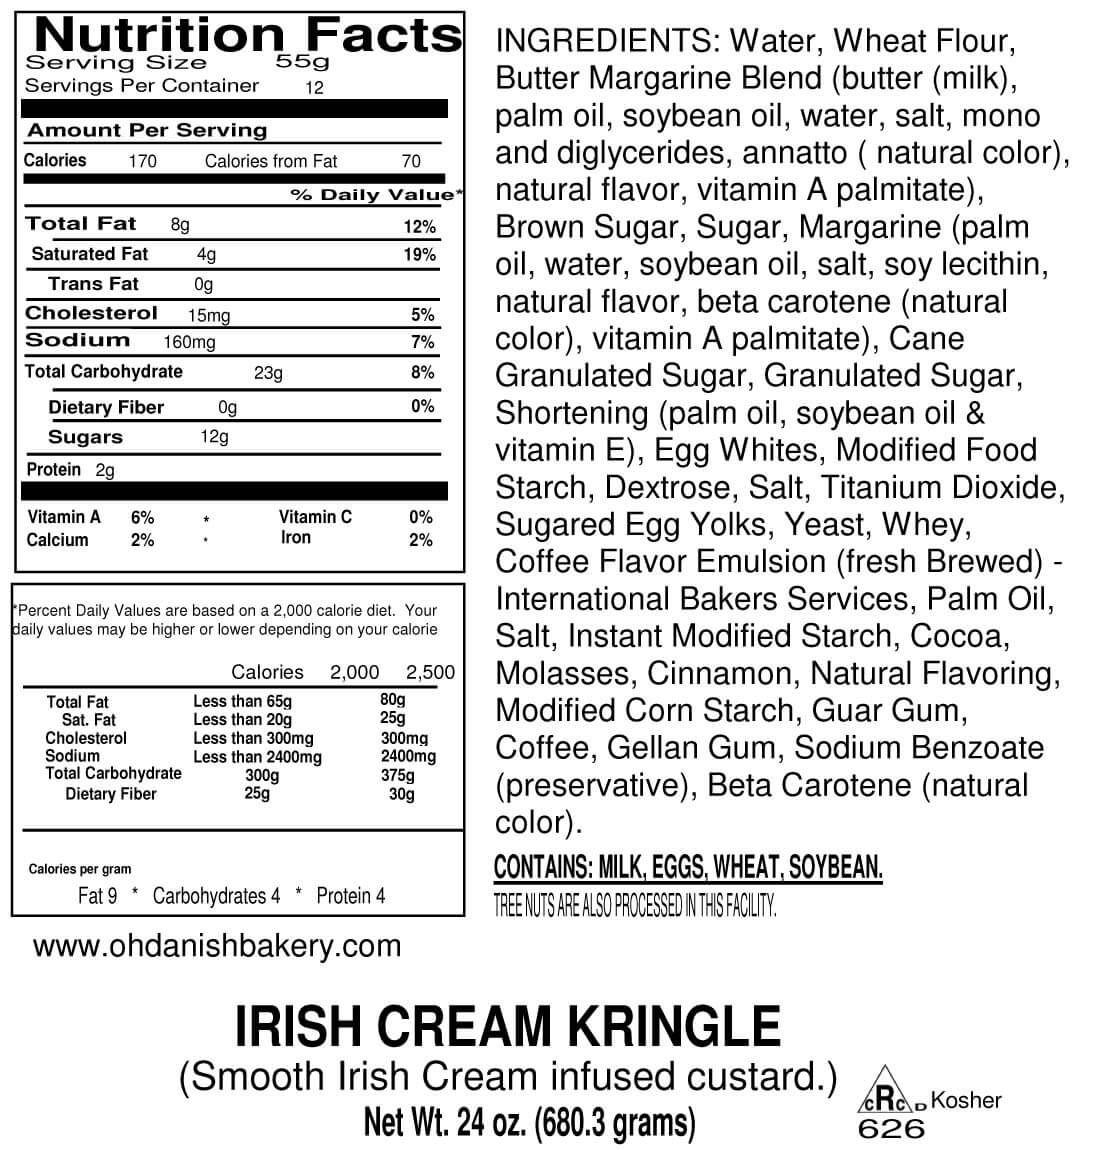 Nutritional Label for Irish Cream Kringle